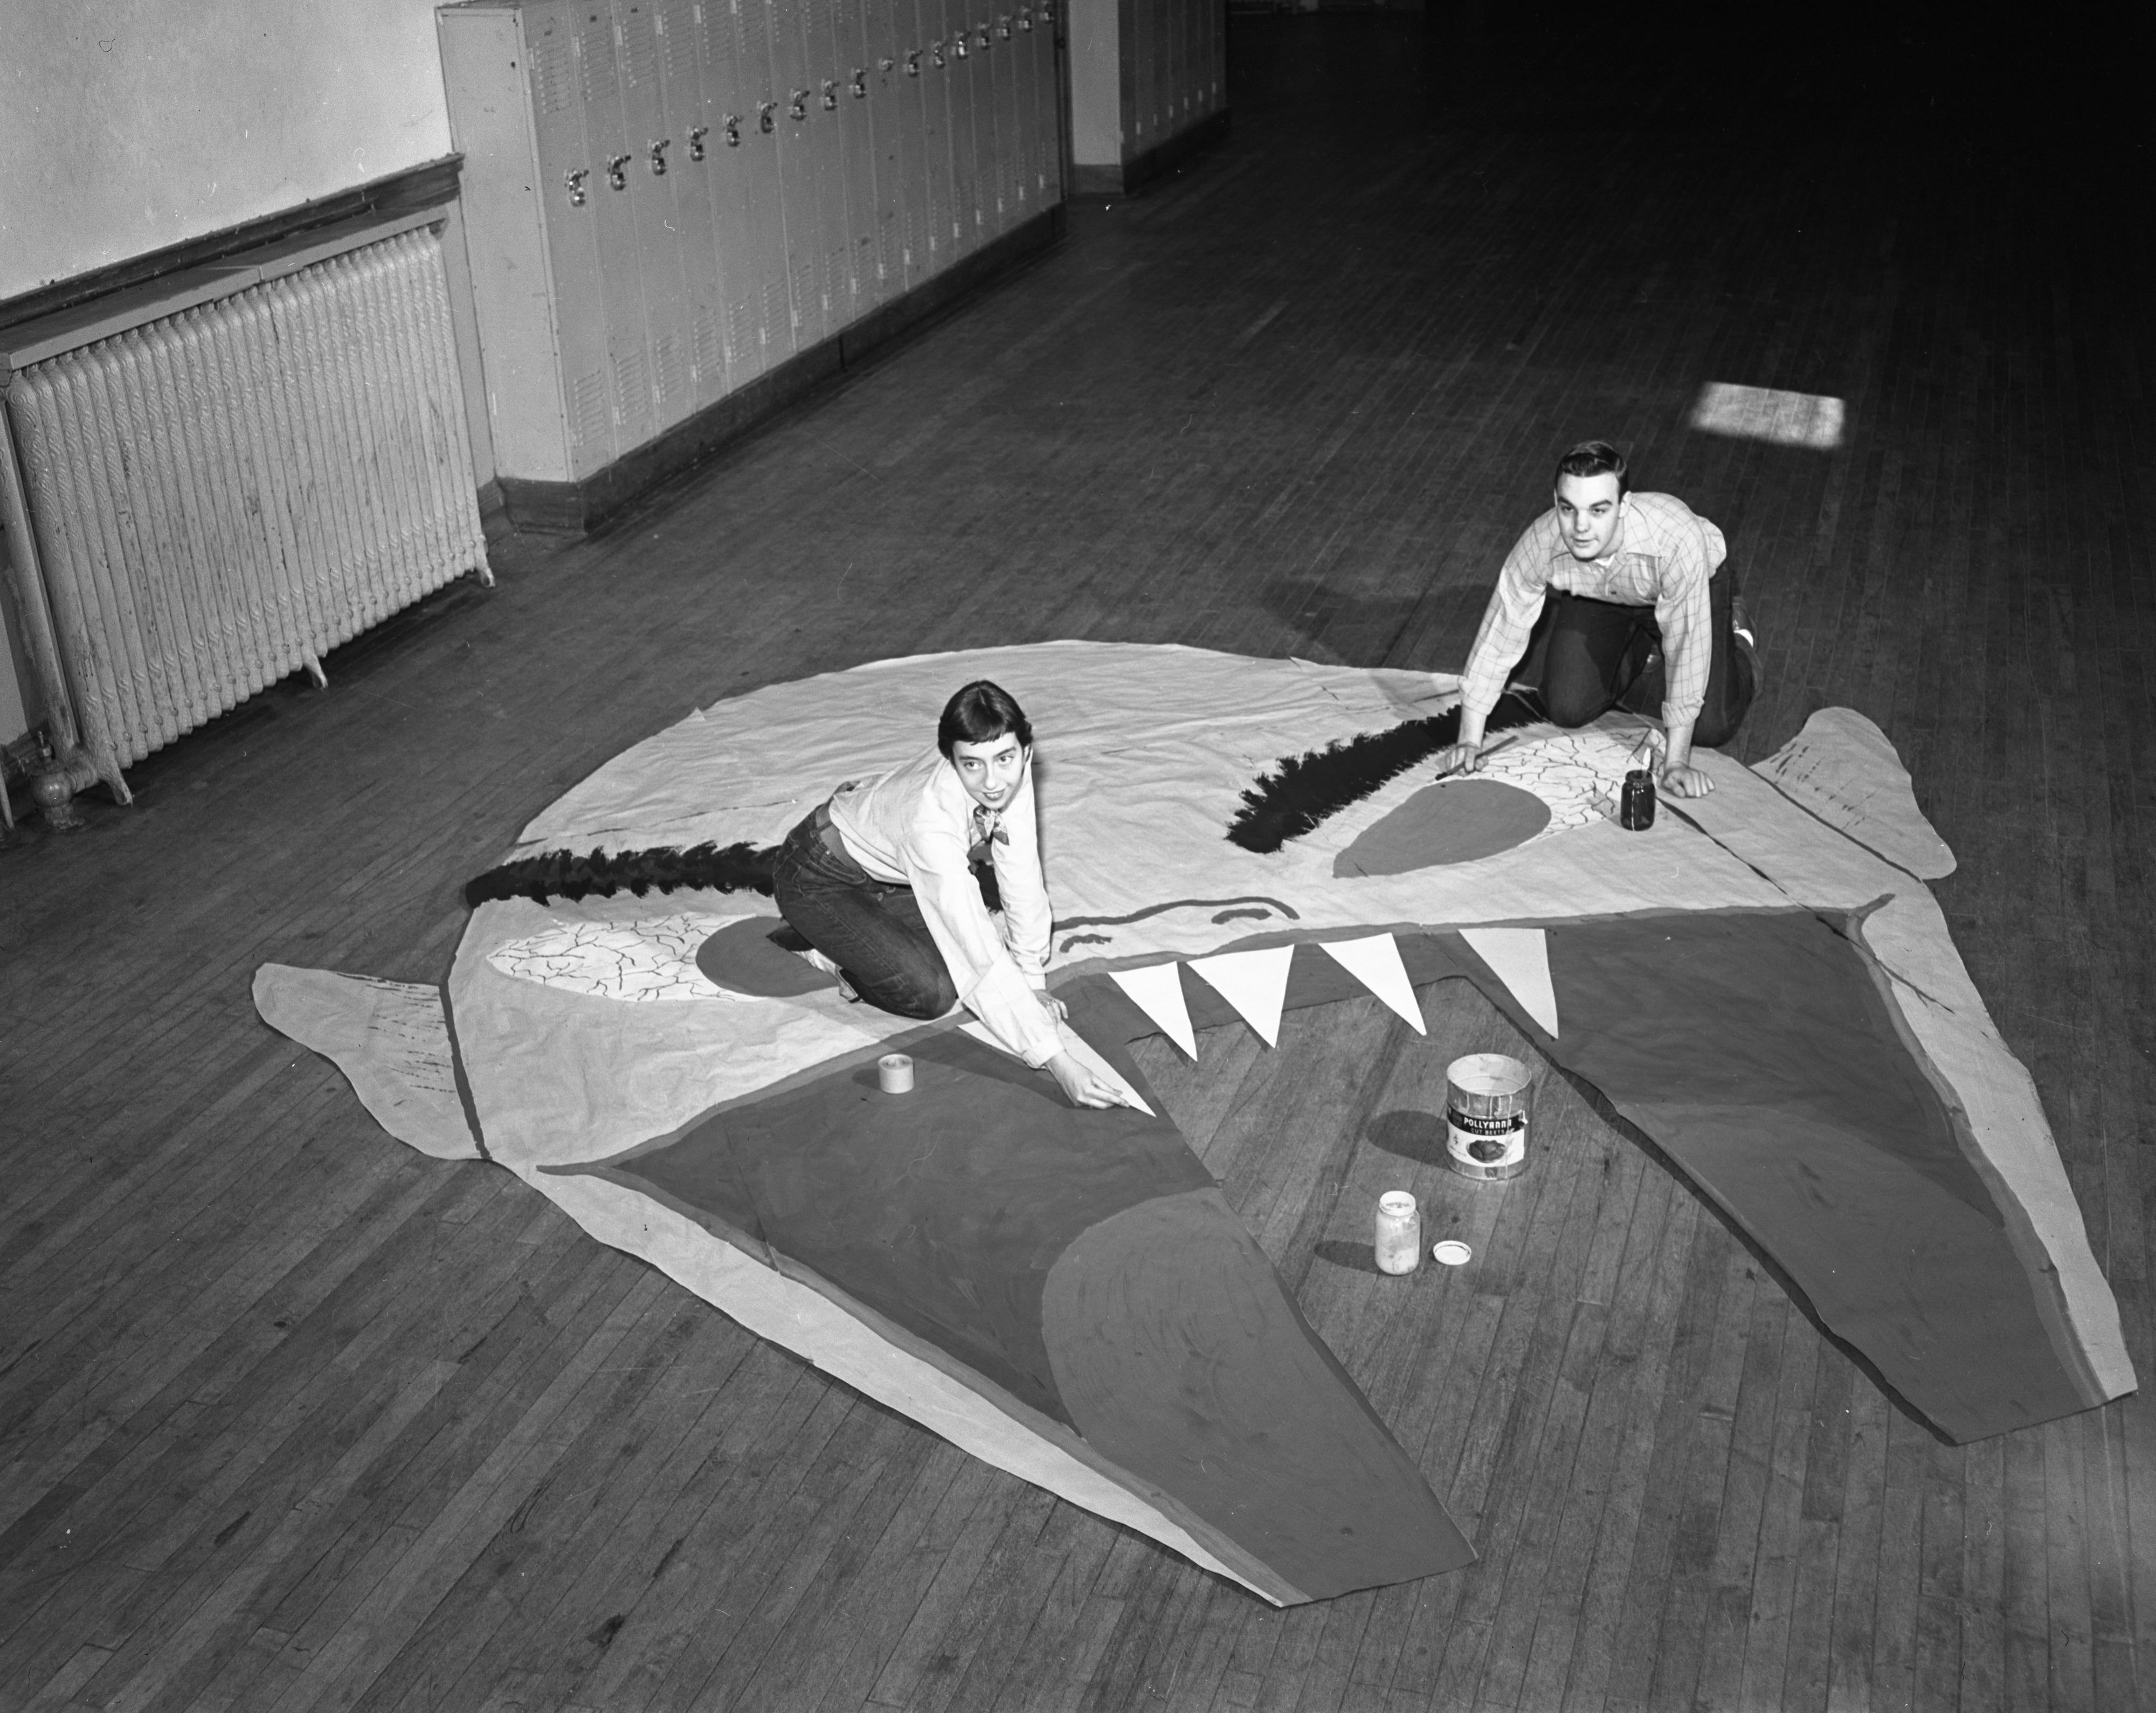 Students Make Decorations for the Ann Arbor High School Carnival, April 1951 image